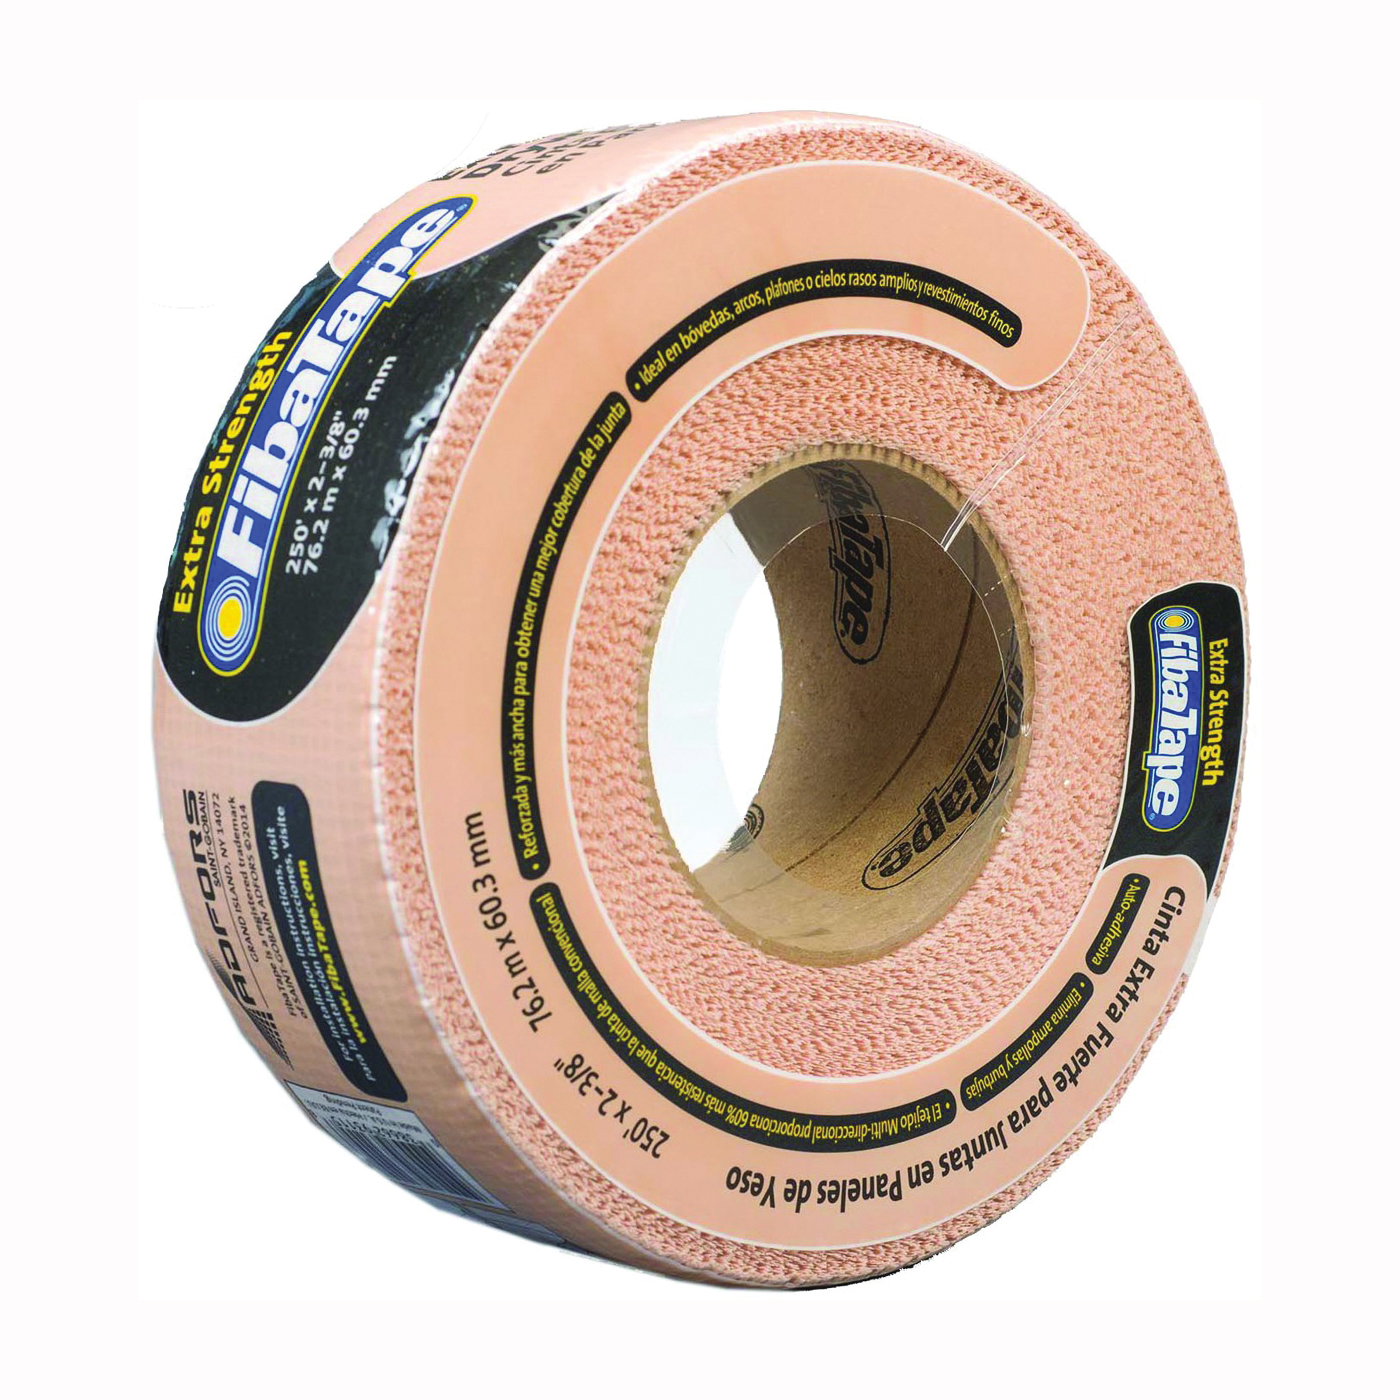 Picture of ADFORS FDW8666-U Drywall Tape Wrap, 250 ft L, 2-3/8 in W, 1/2 mm Thick, Beige, Wrap